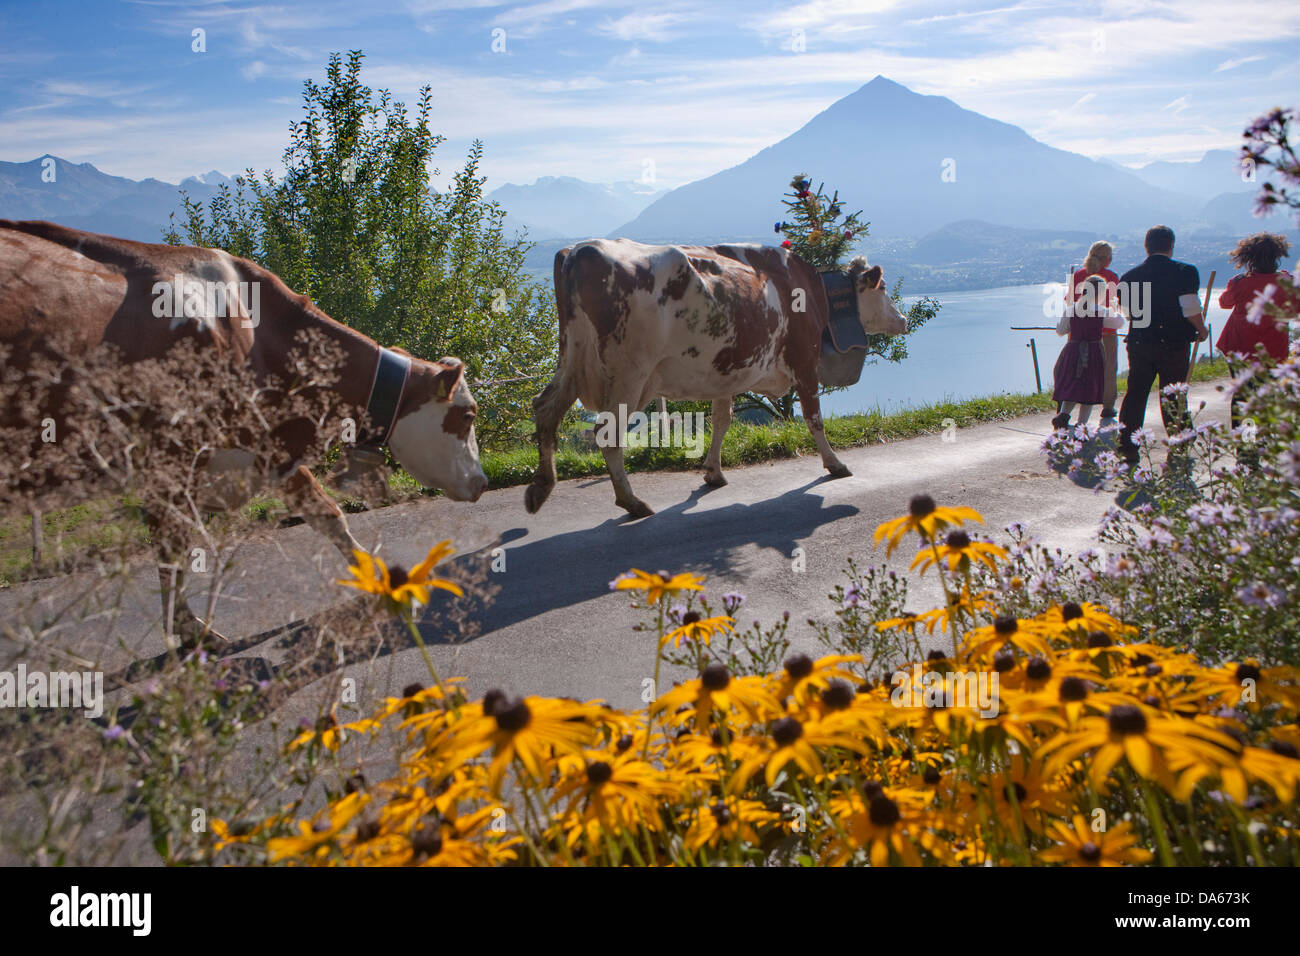 alpine deduction, Justistal, lake of Thun, Niesen, tradition, folklore, national costumes, agriculture, national - Stock Image